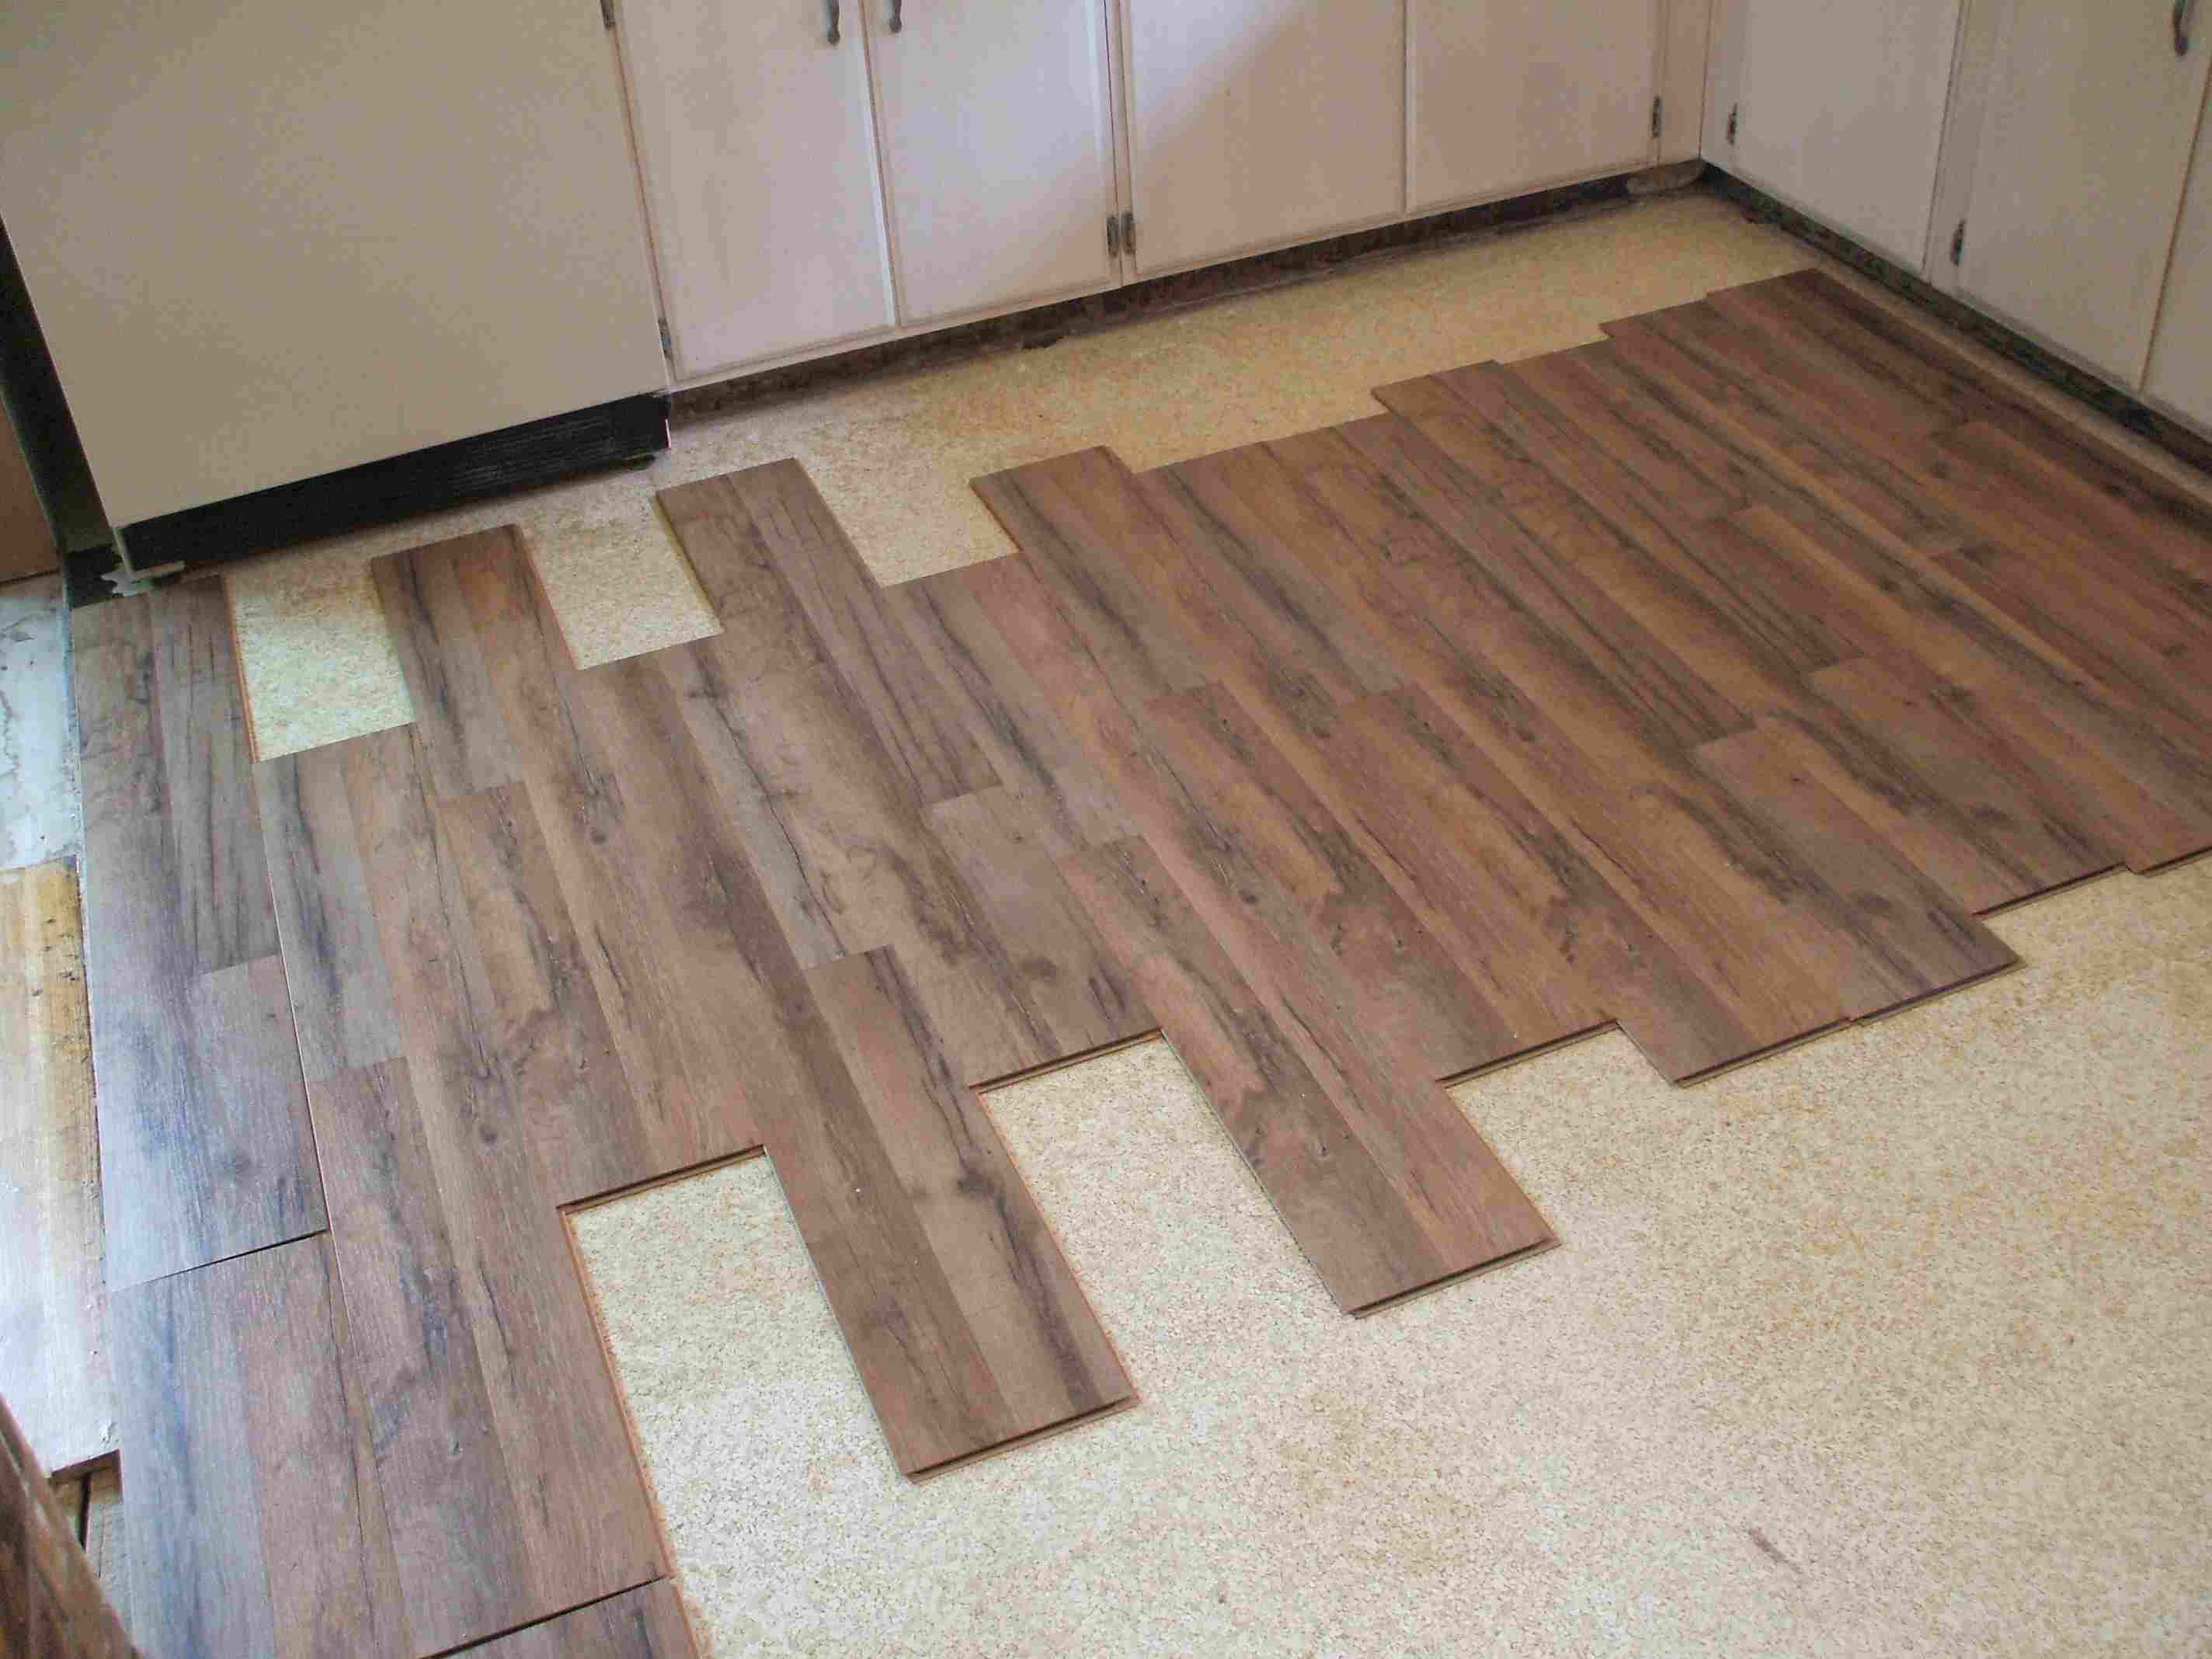 how to lay a hardwood floor tongue and groove of laminate flooring installation made easy pertaining to installing laminate eyeballing layout 56a49d075f9b58b7d0d7d693 jpg